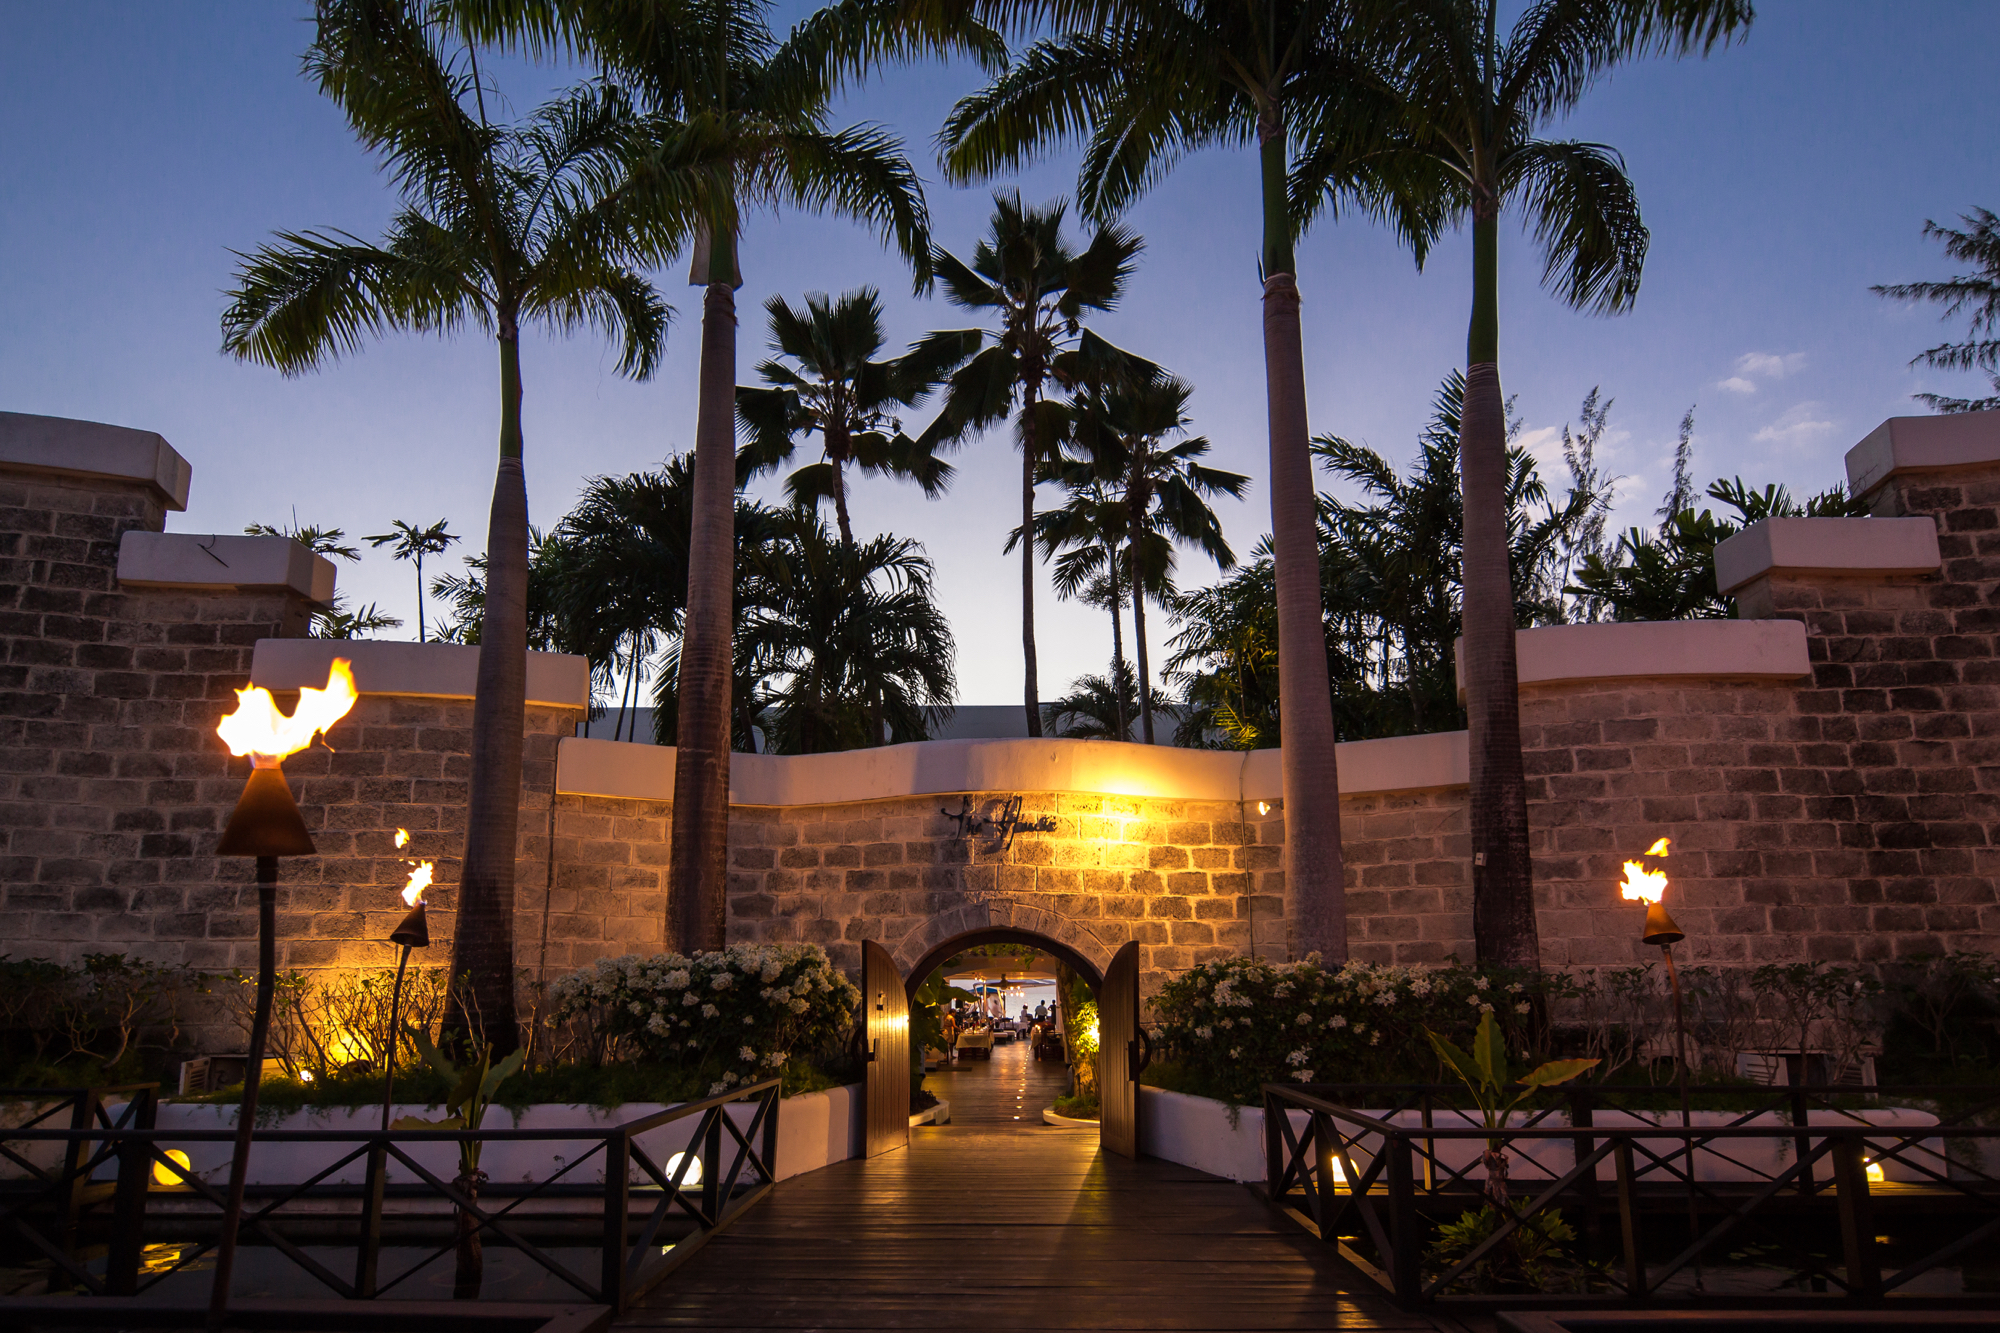 The House Barbados Great Black Friday Deals on Hotels